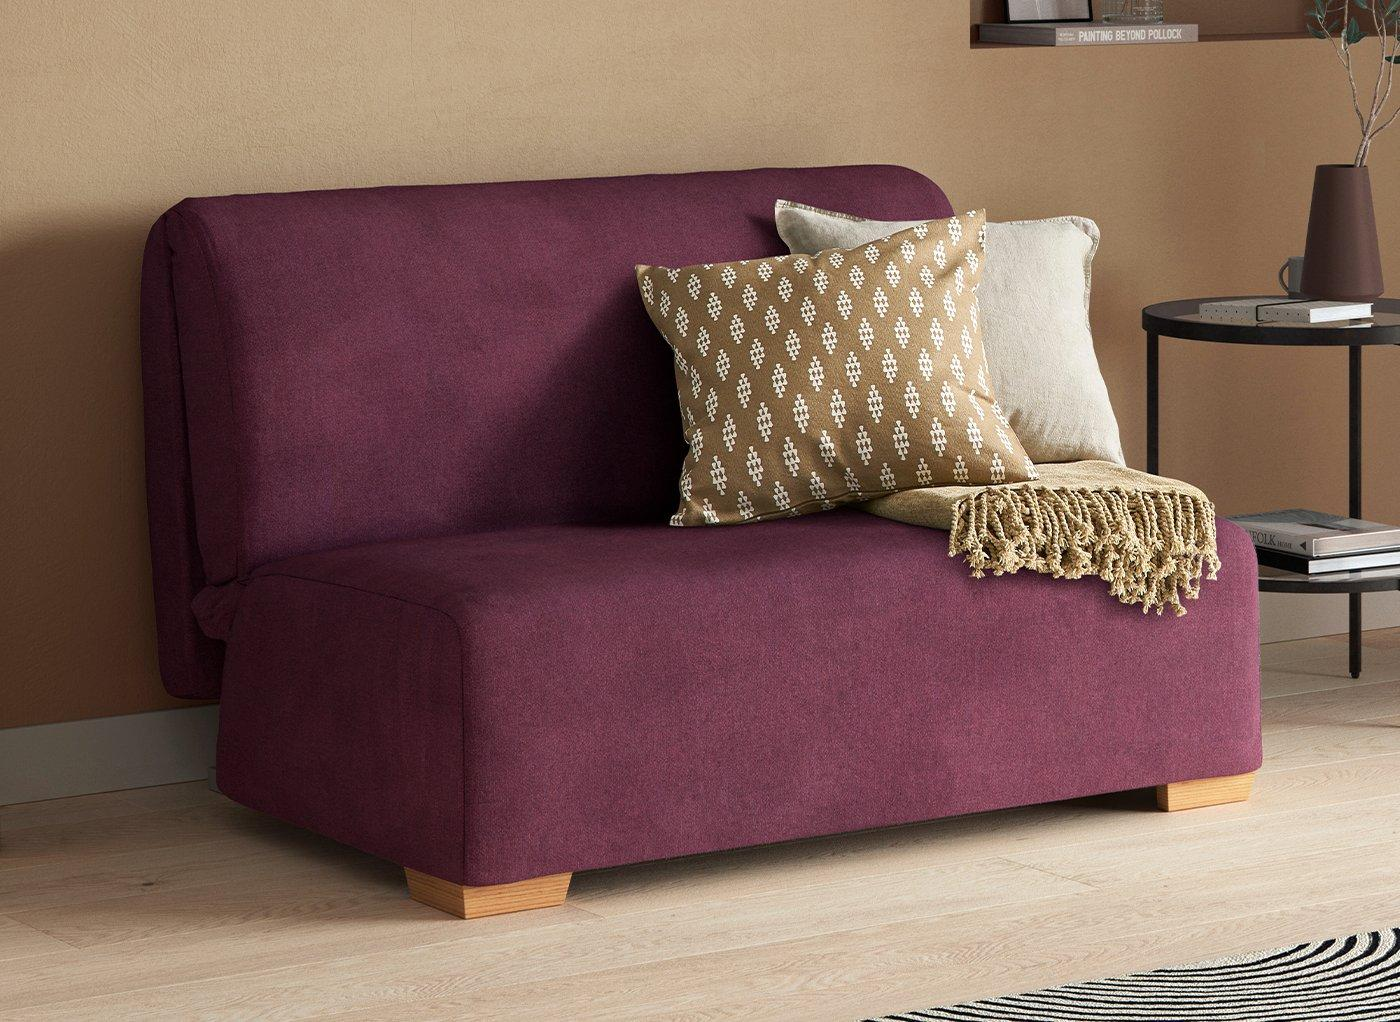 Cork 2 Seater 4'6 A-Frame Sofa Bed - Plum Double PURPLE